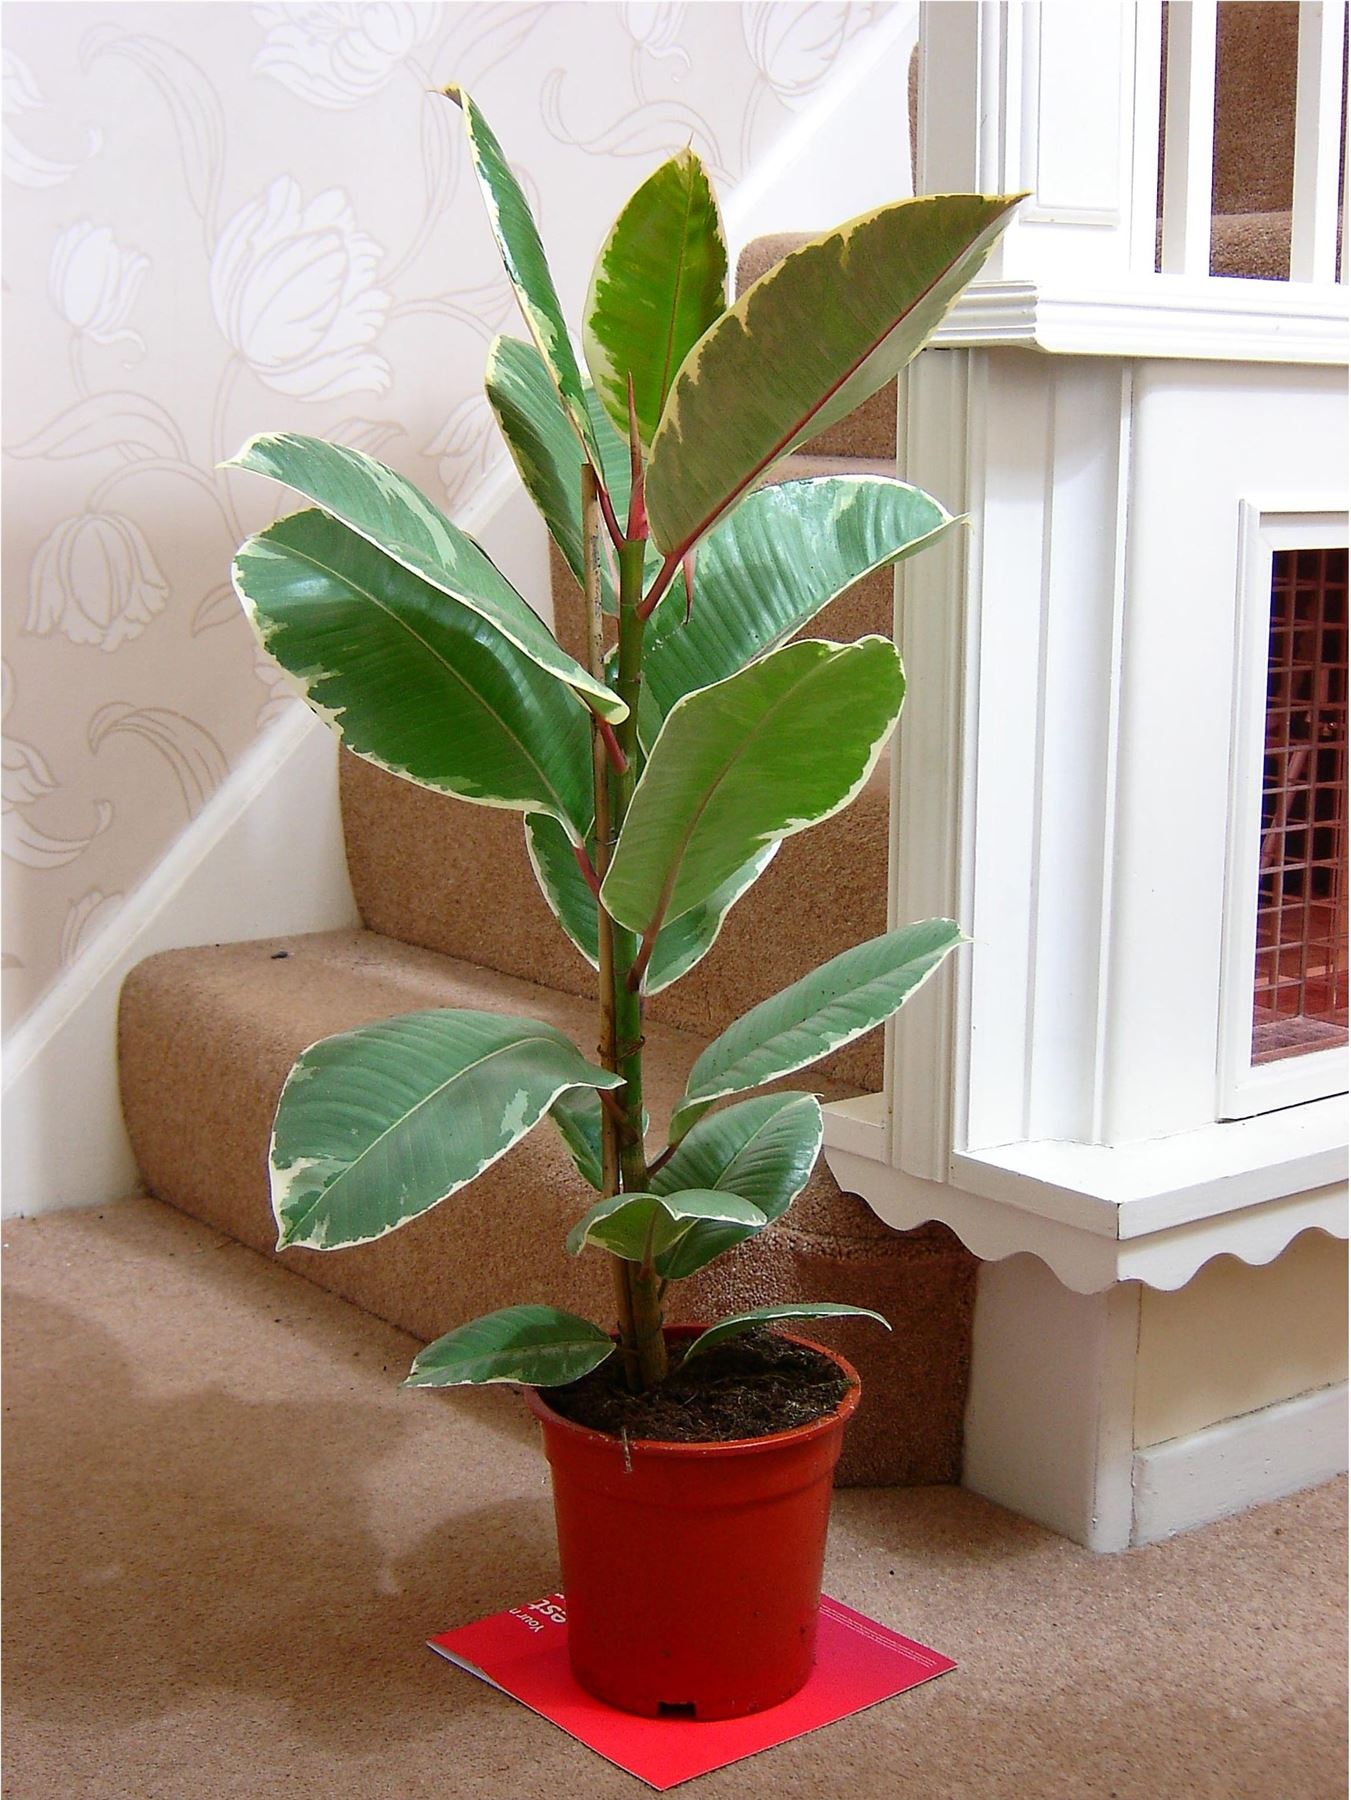 TRADITIONAL-EVERGREEN-INDOOR-HOUSE-TREE-PLANT-POT-rubber-ficus-golden-king-fig